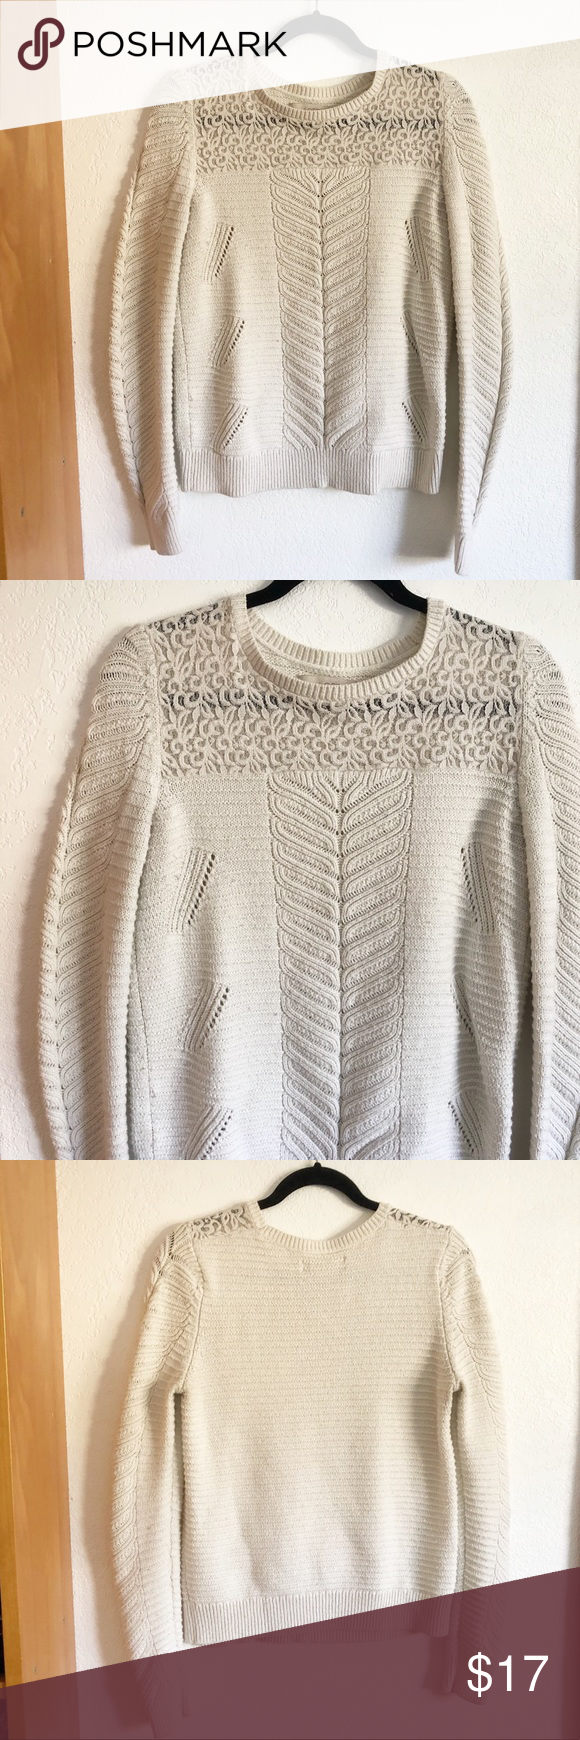 LOFT | Cream Textured Fall Sweater Beautiful piece from LOFT. Super comfortable and will keep you warm for fall/winter. Beautiful texture/pattern all over. Very unique style. Great condition Length: 24.5 inches Pit to pit: 16 inches LOFT Sweaters #loftclothes